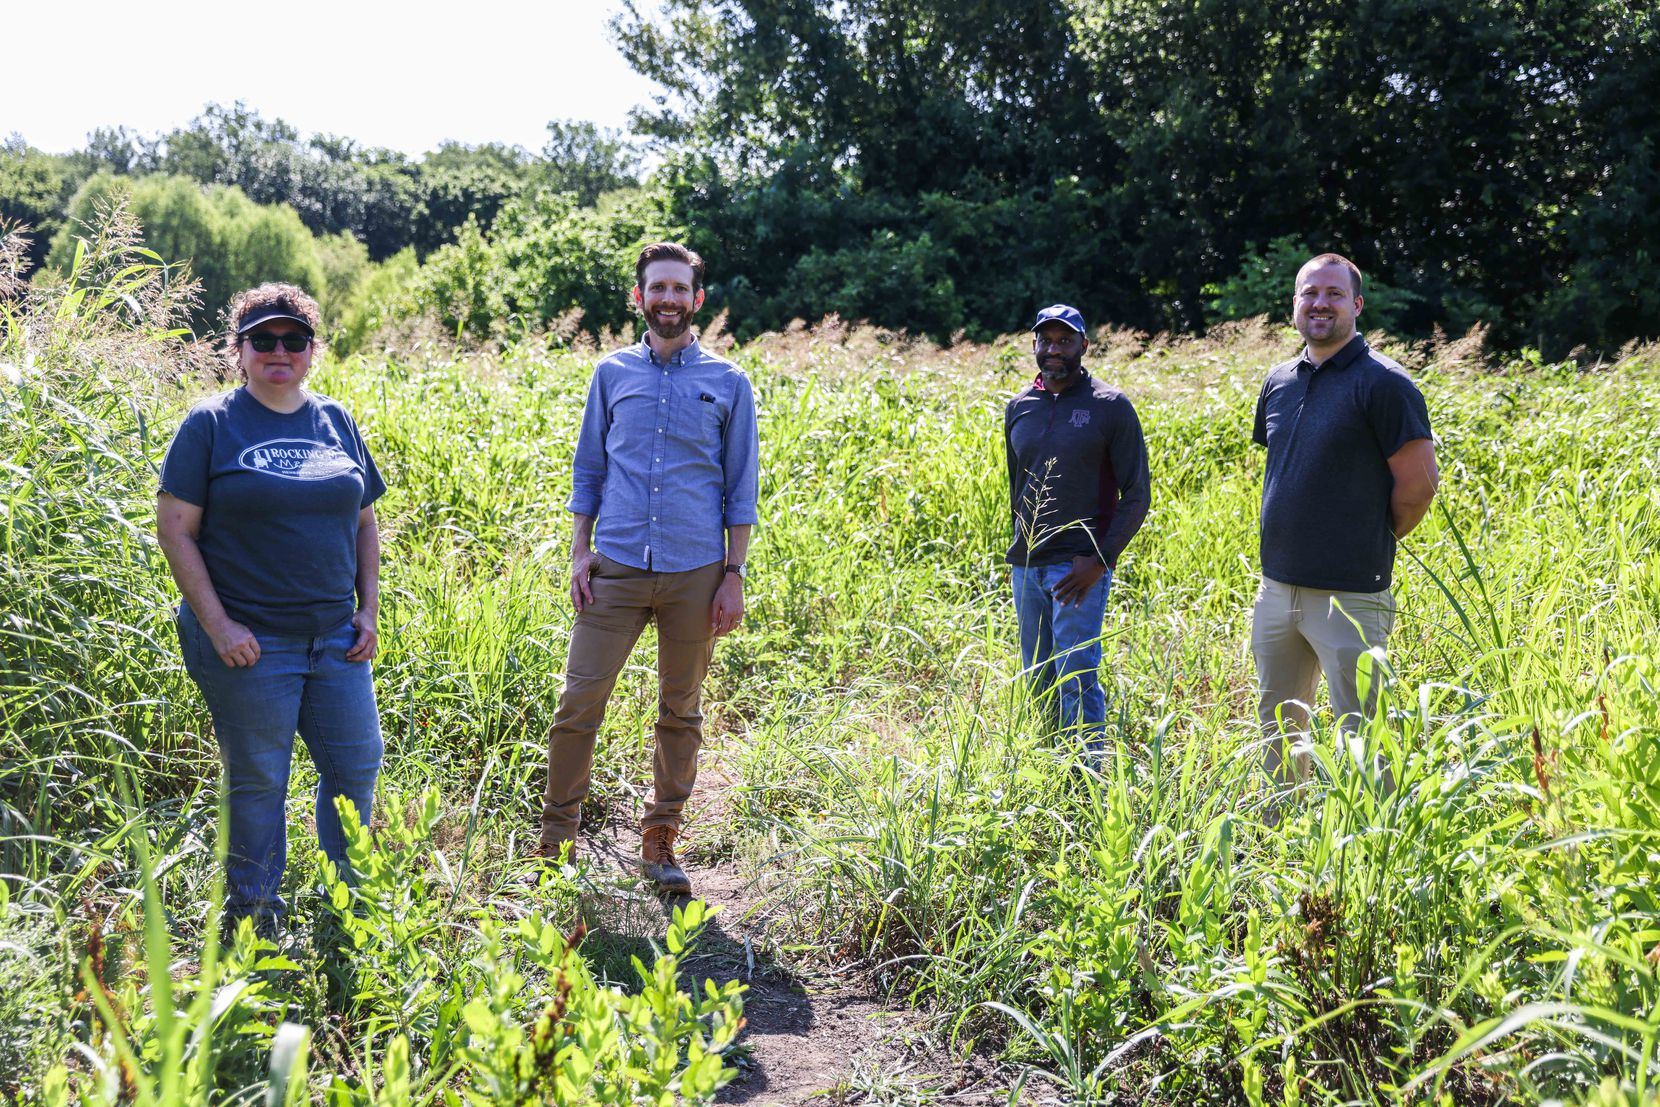 Casie Pierce (from left), a resident of the nearby Parkdale neighborhood and longtime trails advocate; Philip Hiatt Haigh, executive director of the Circuit Trail Conservancy; Allyn Media vice president Shawn Williams; and Kevin Oden of Dallas' Office of Integrated Public Safety Solutions, on a portion of the land south of Military Parkway that will become part of the Spine Trail's second phase.